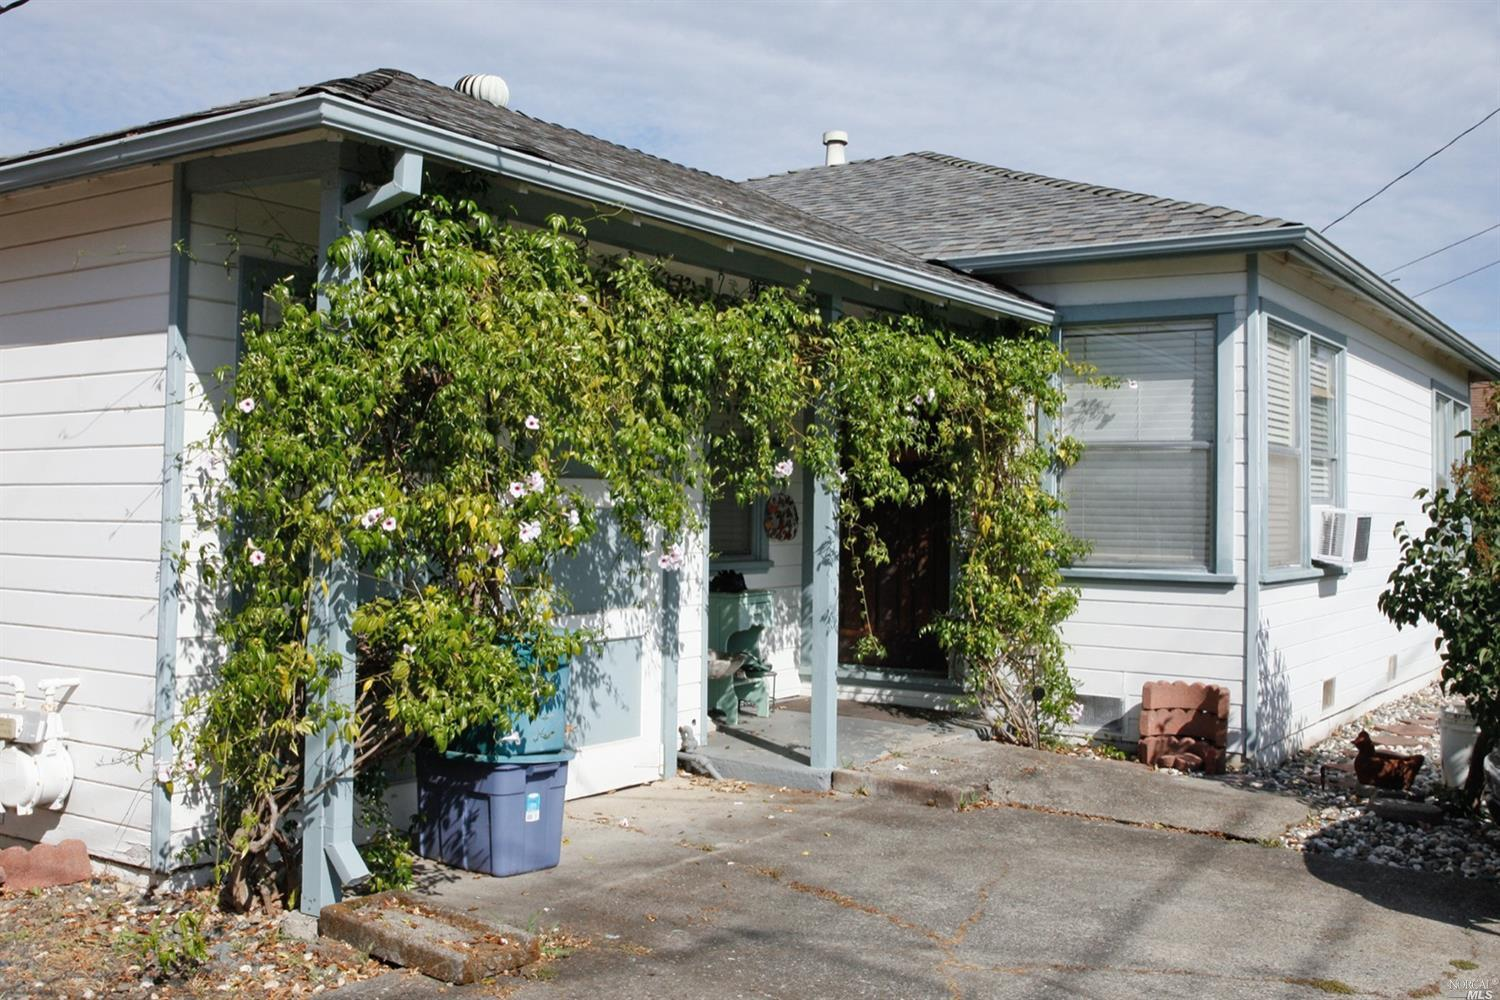 Looking for your first home or an investment opportunity in Napa? This home could be either! Hardwoo